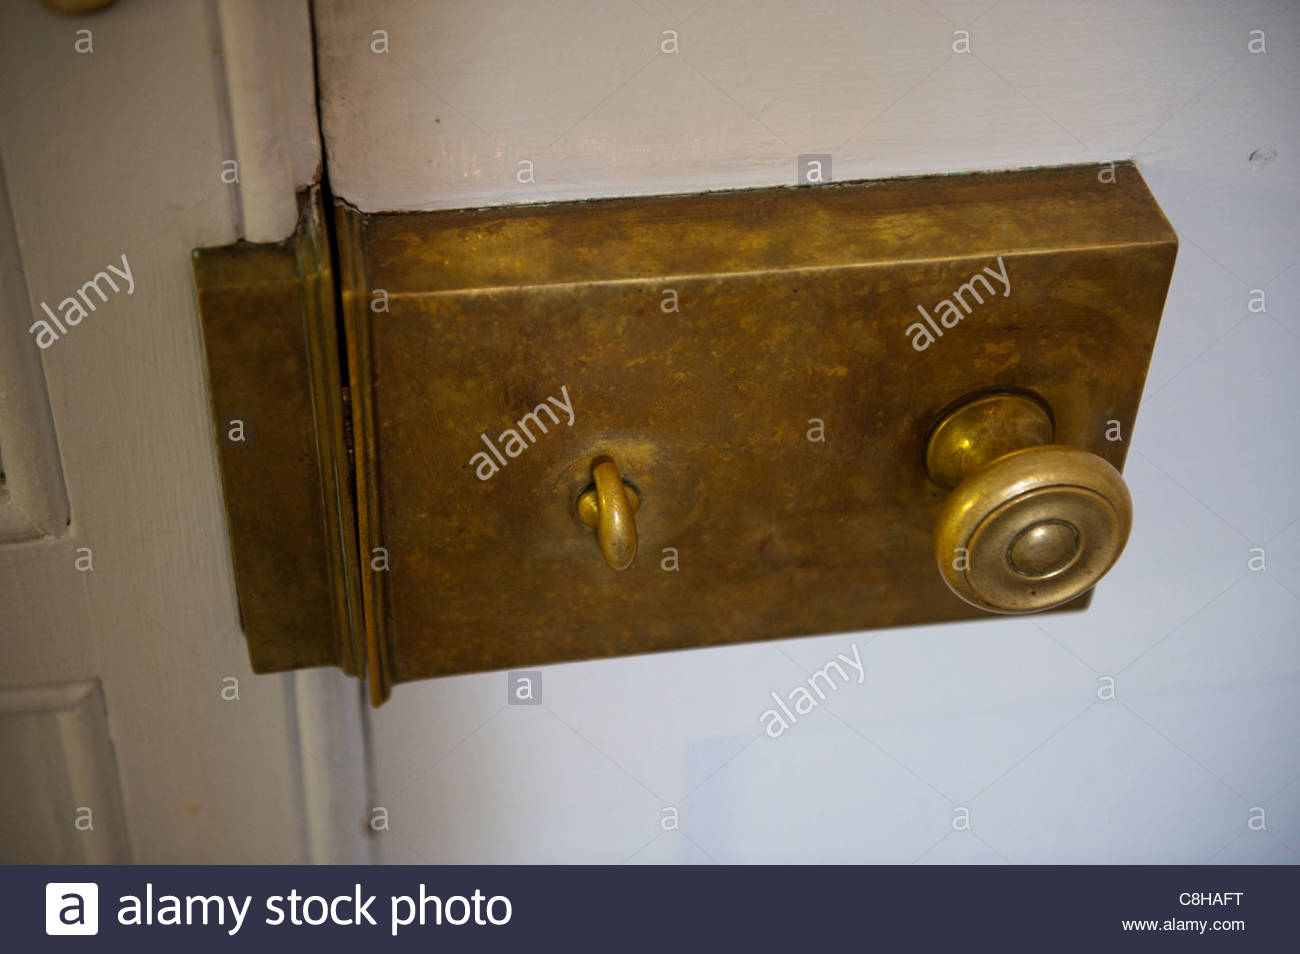 Close up of an antique lock on a door. - Stock Image